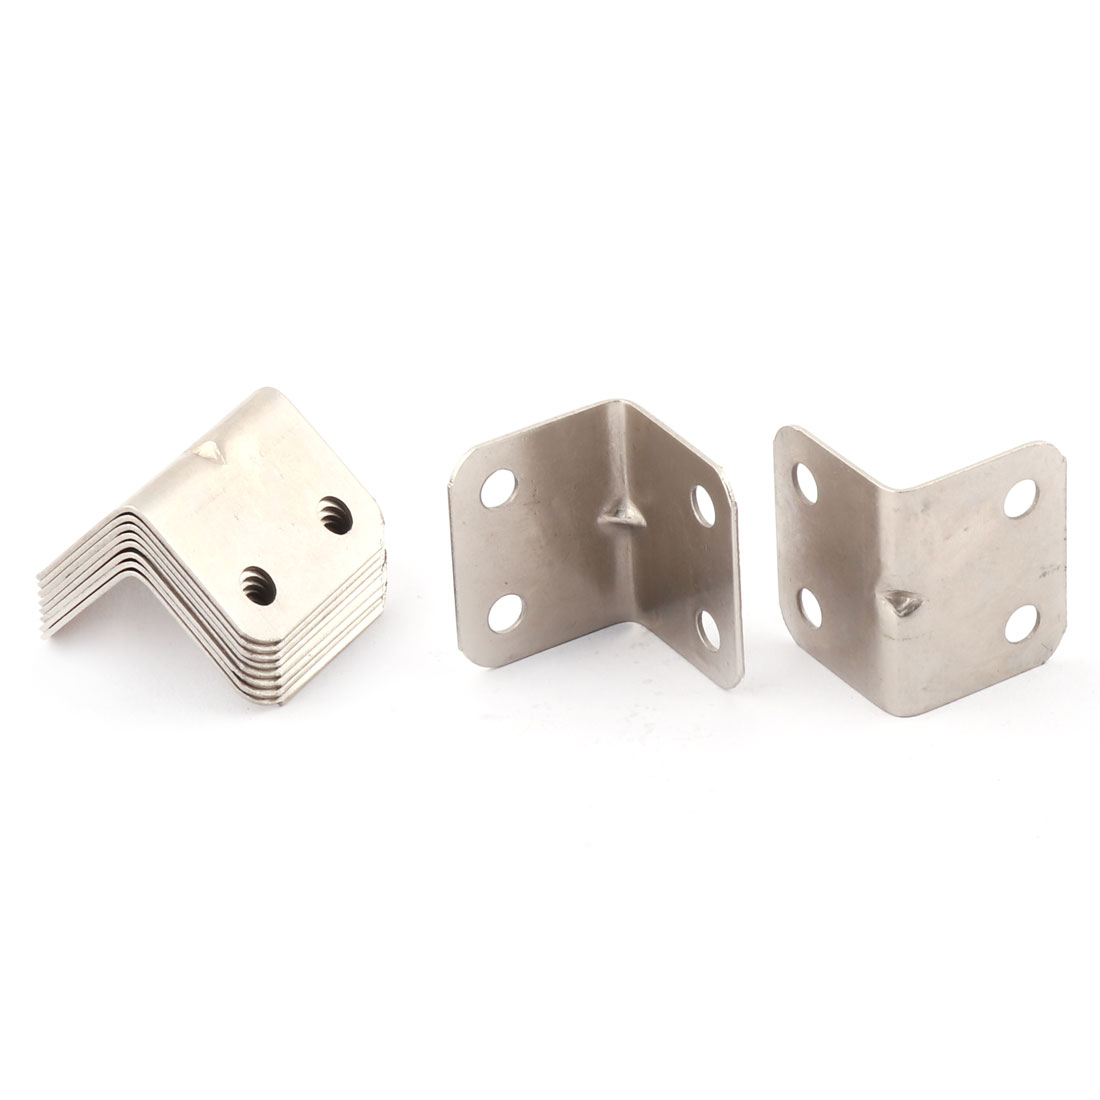 10 Pcs 25mmx25mmx32mm L Shaped White Metal Corner Brace Angle Bracket Support Holder Fasteners